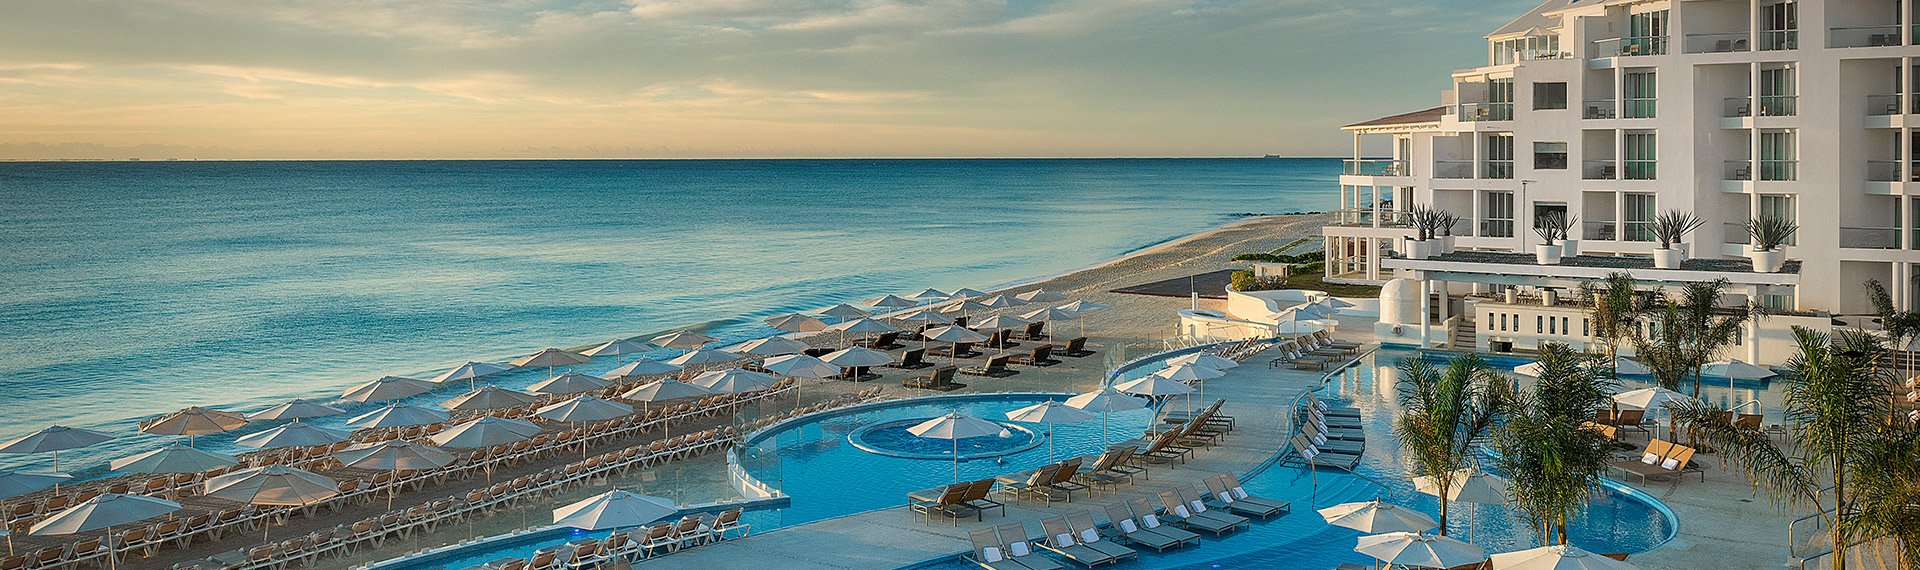 Amazing all-inclusive resort in paradise Playa del Carmen